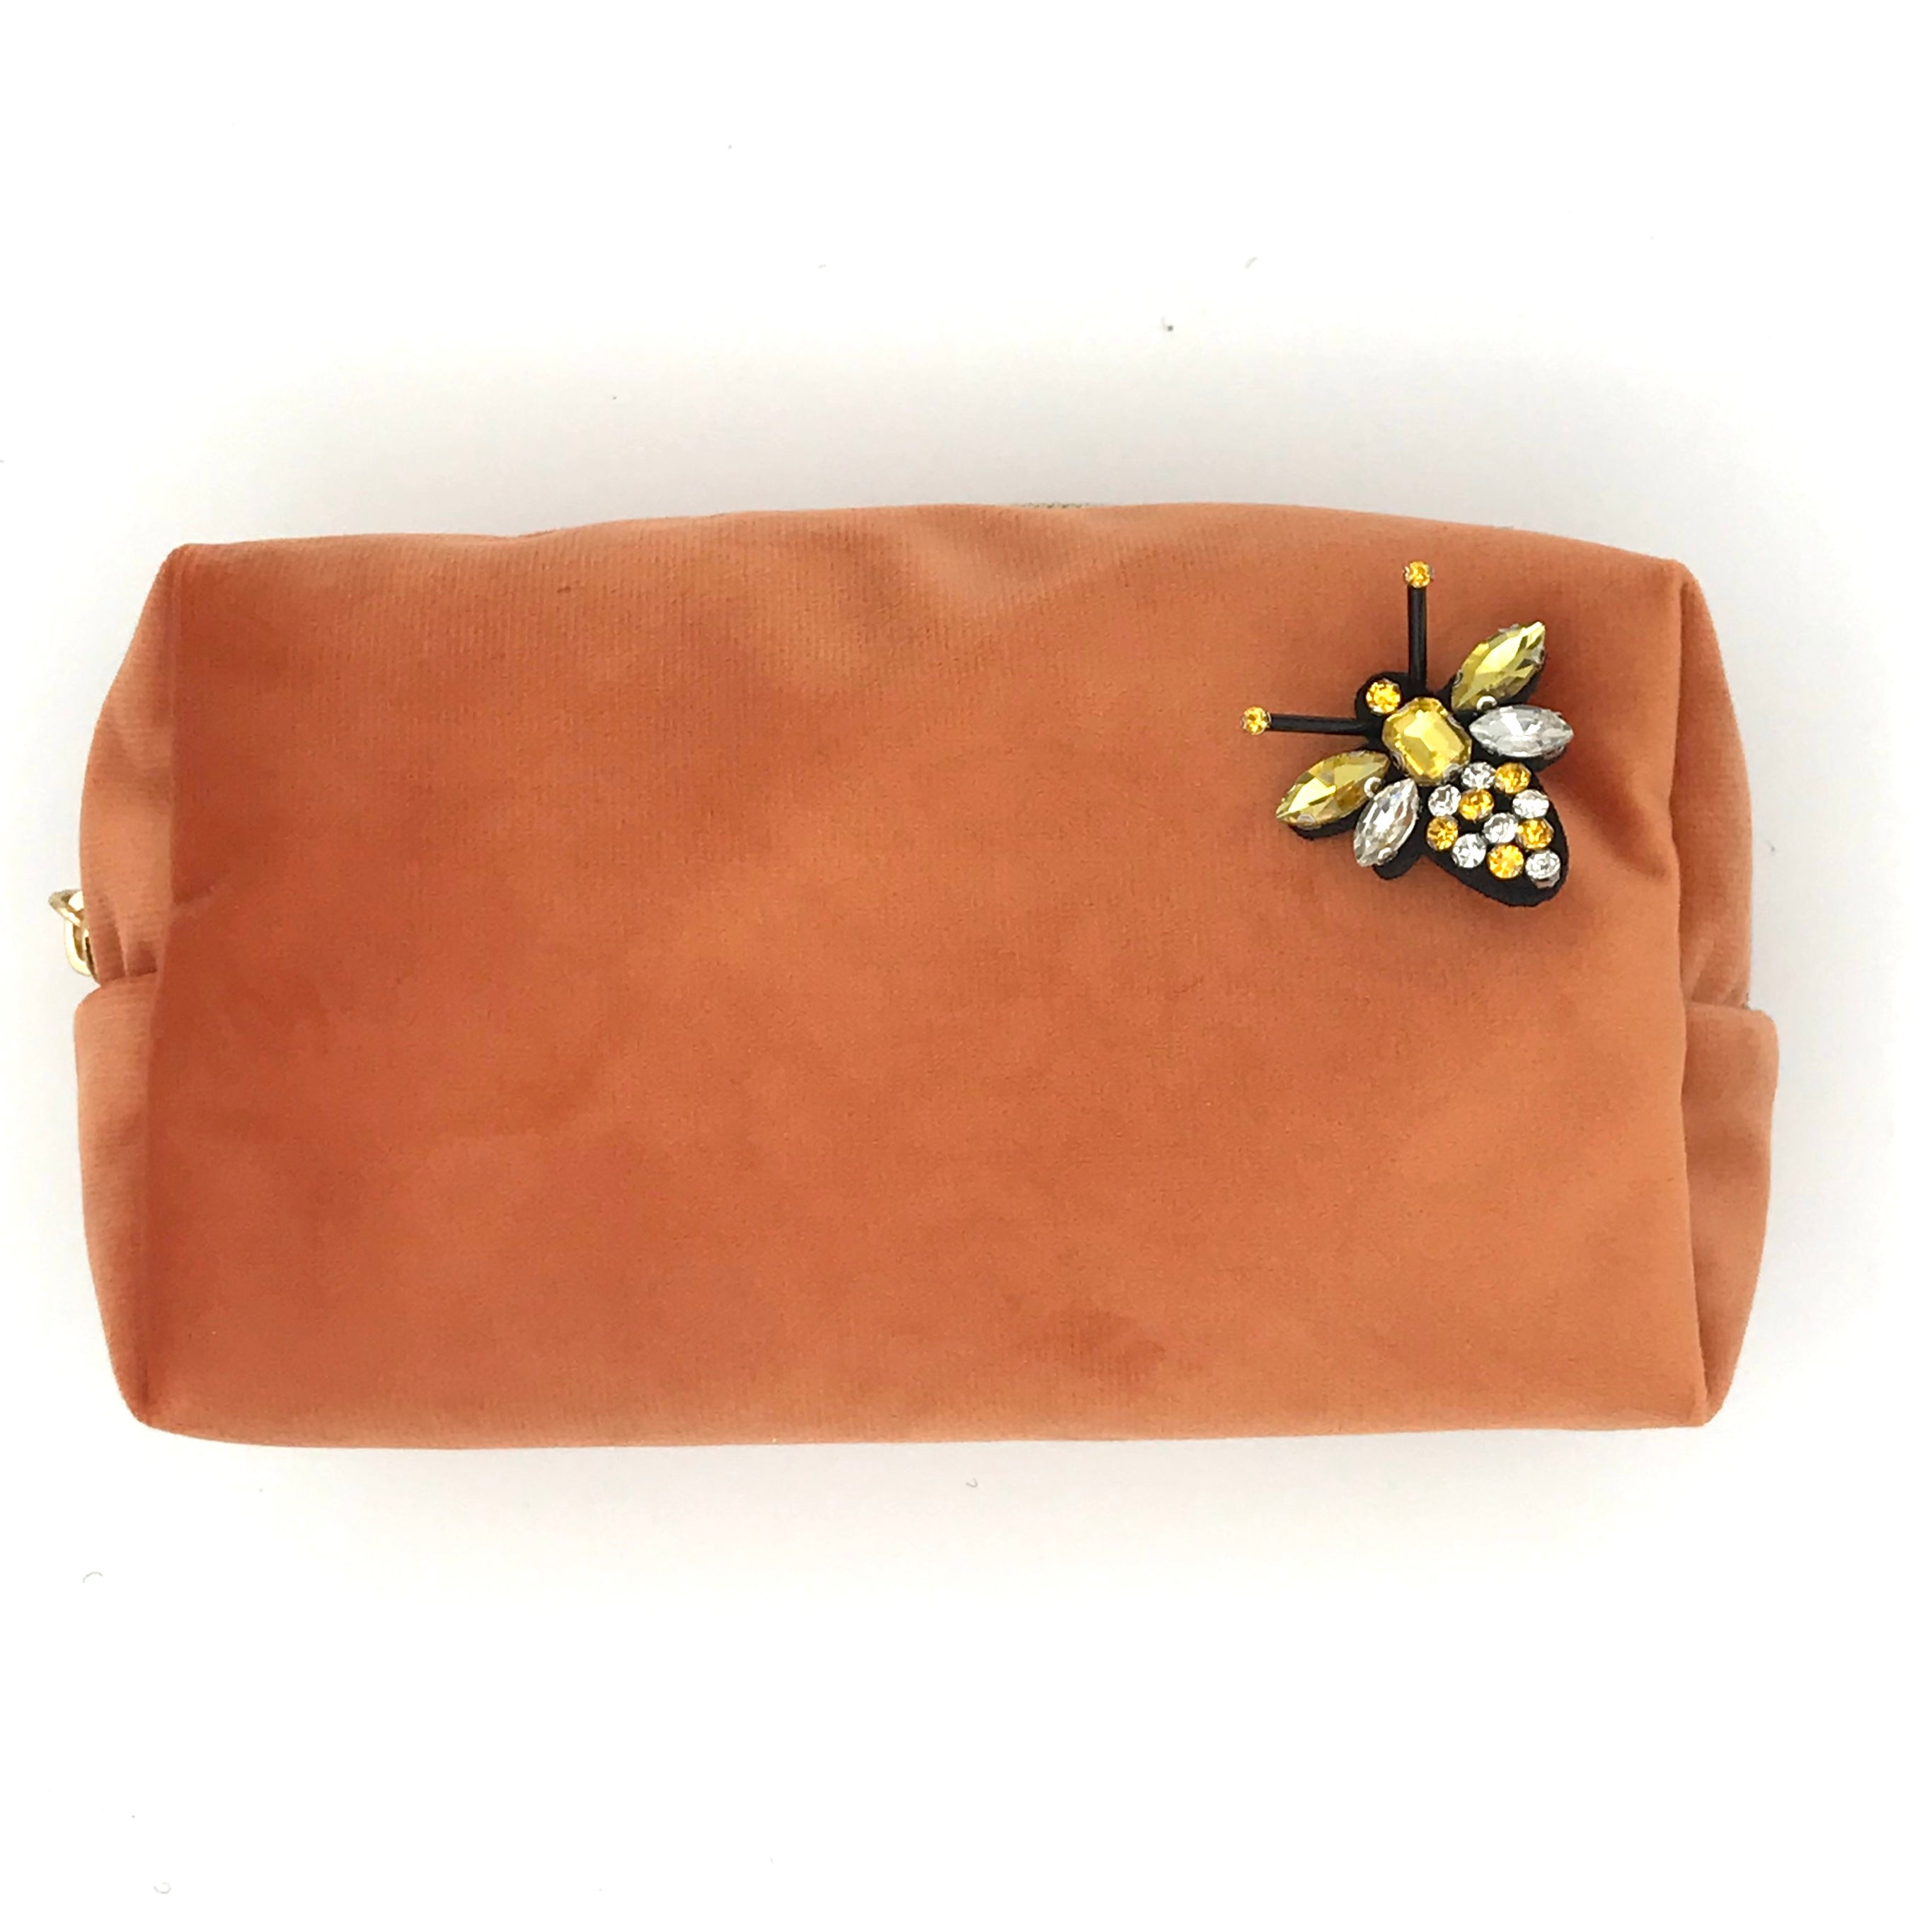 Velvet make-up bag in cantaloupe with a queen bee pin